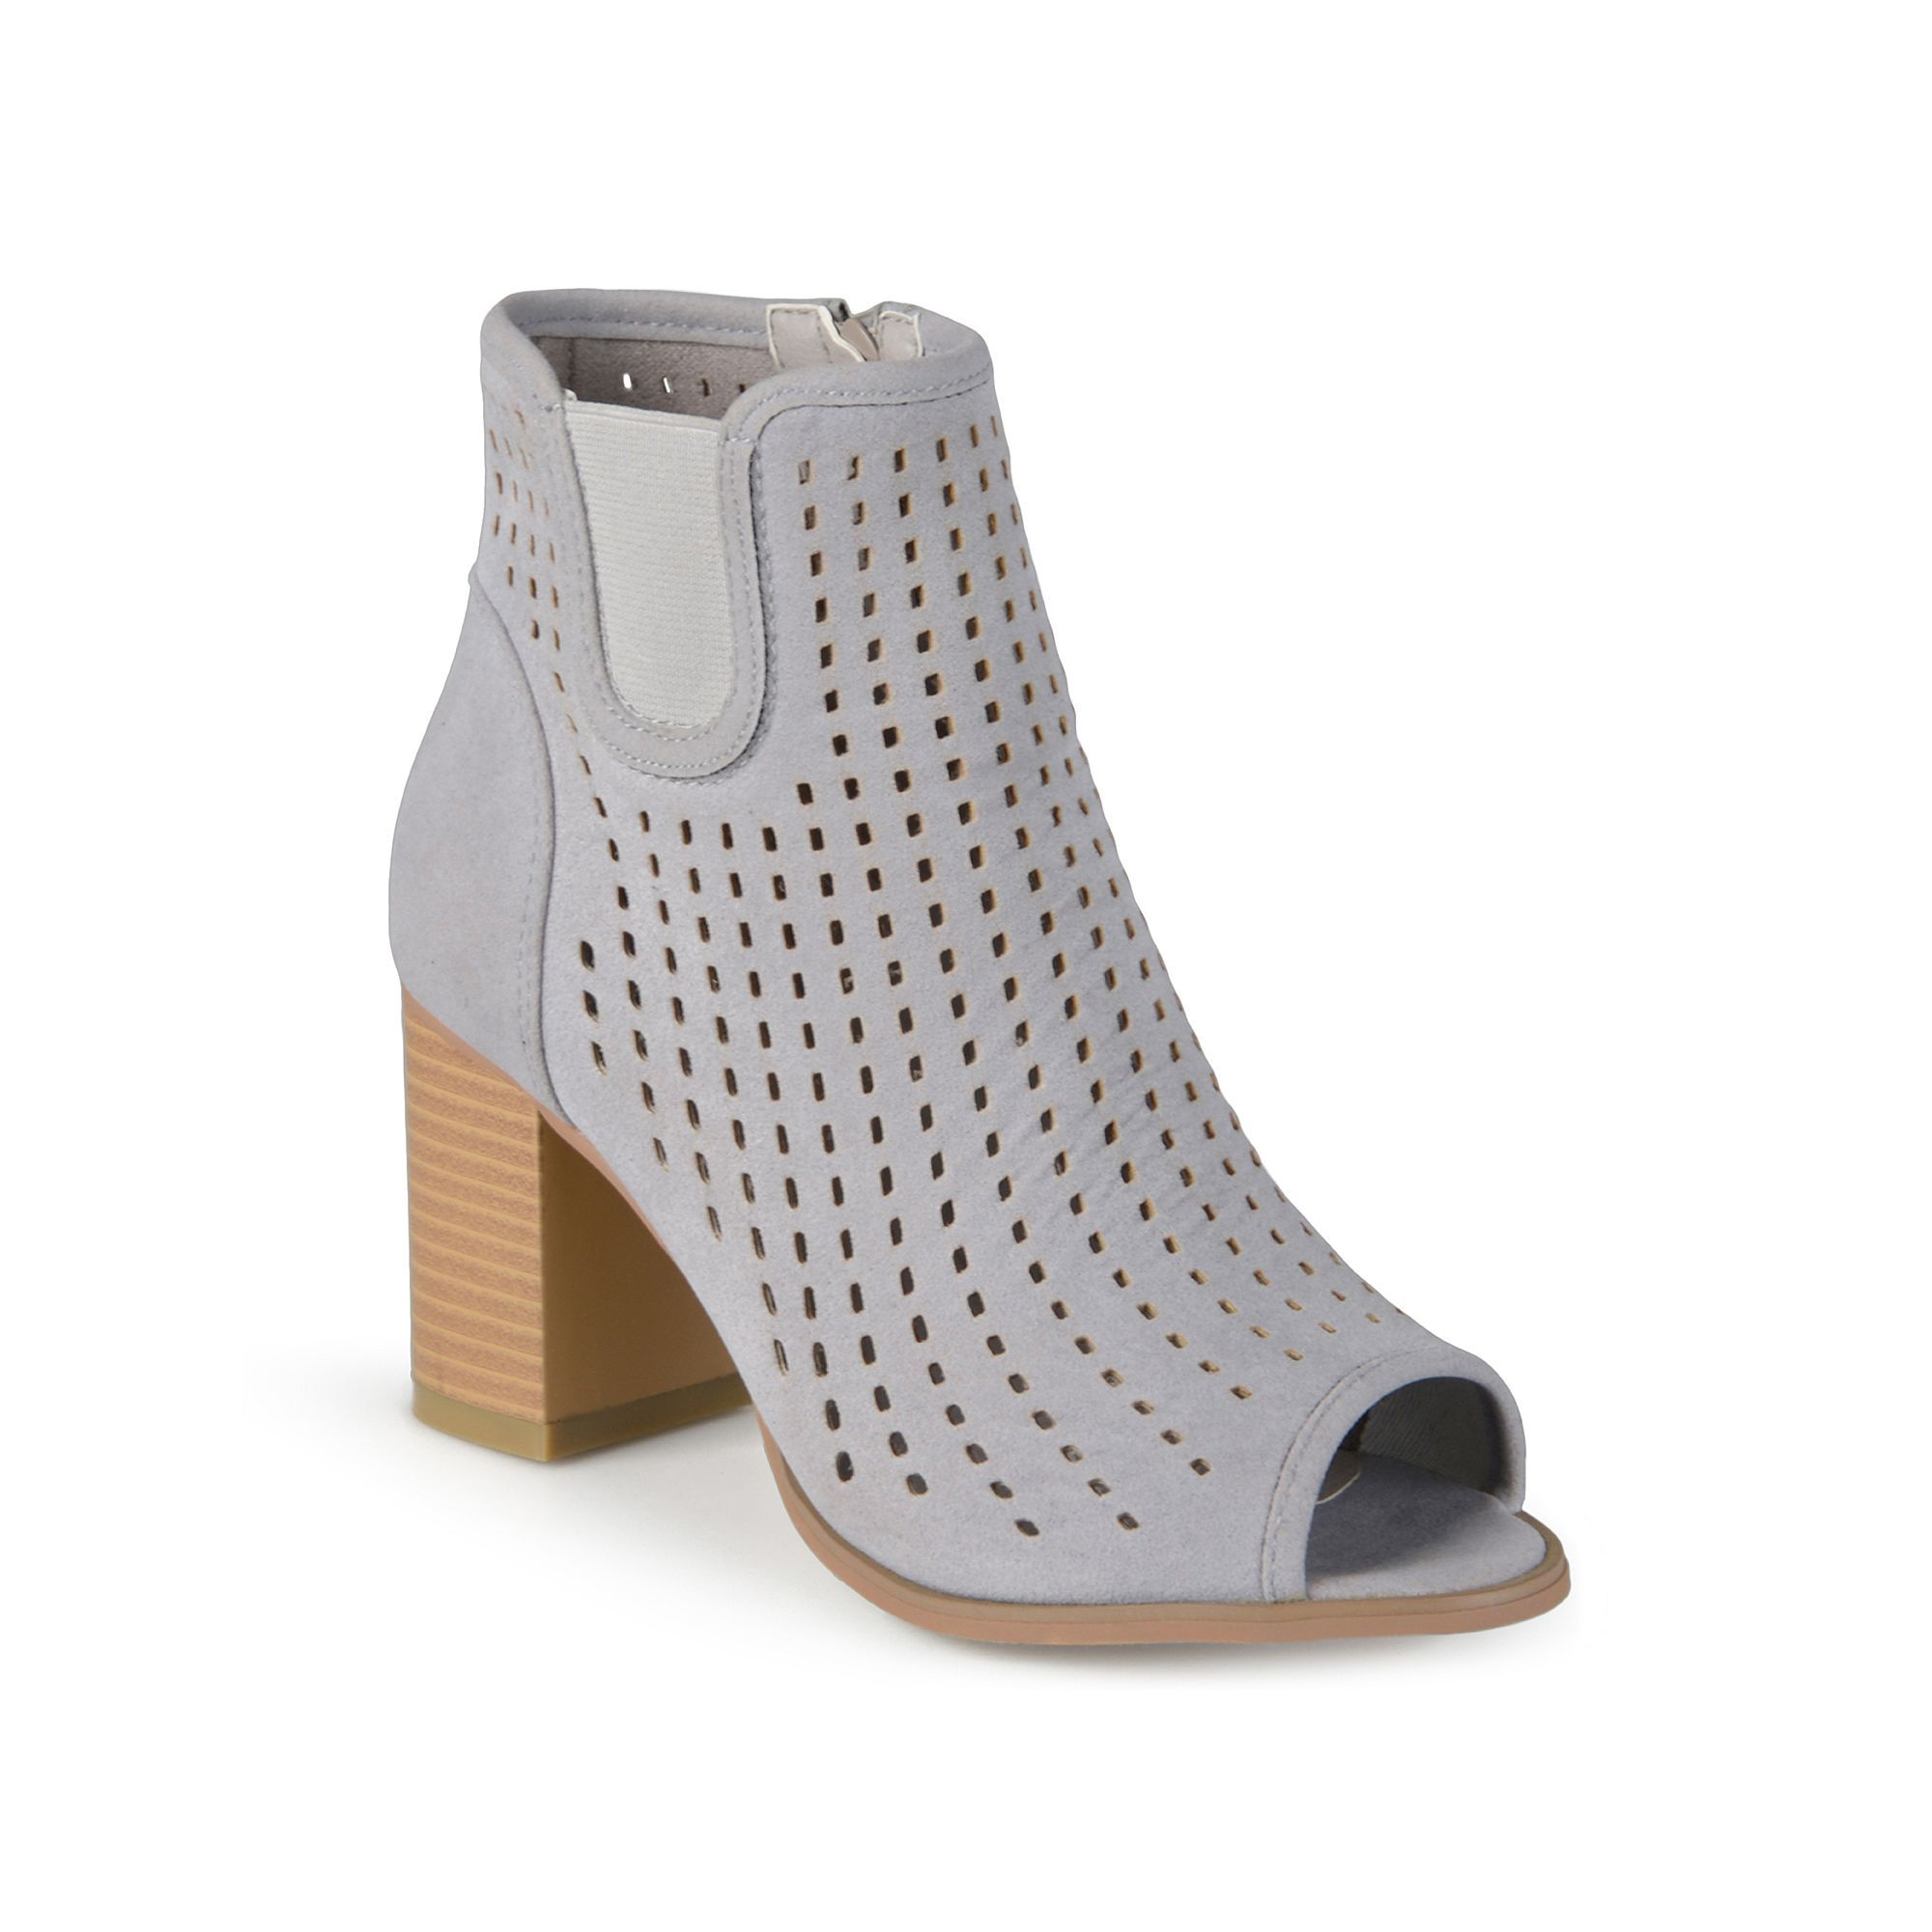 6a0ab3dfe5bd Journee Collection Emm Women s Ankle Boots